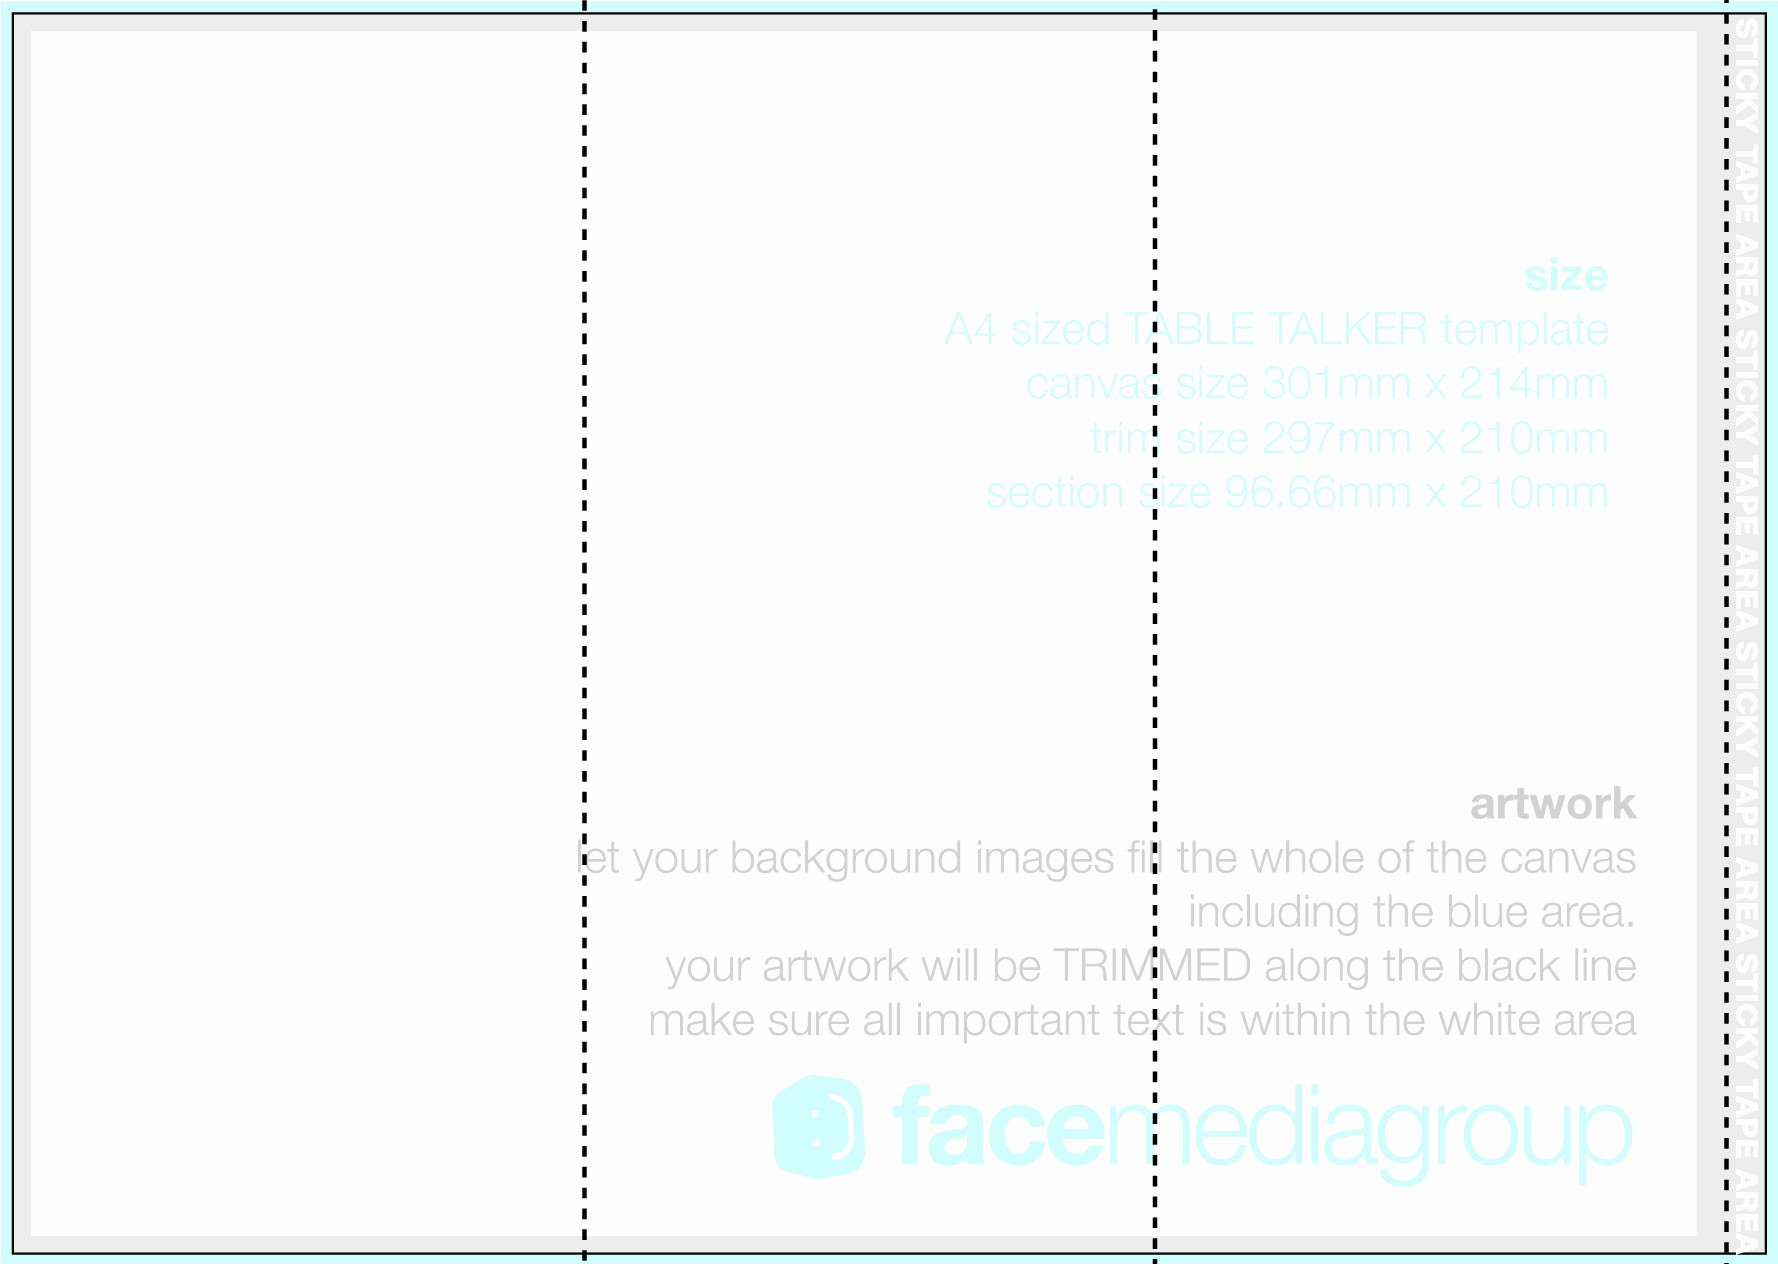 A4 Tri Fold Brochure Template New A4 Tri Fold Brochure Template Word Templates Resume